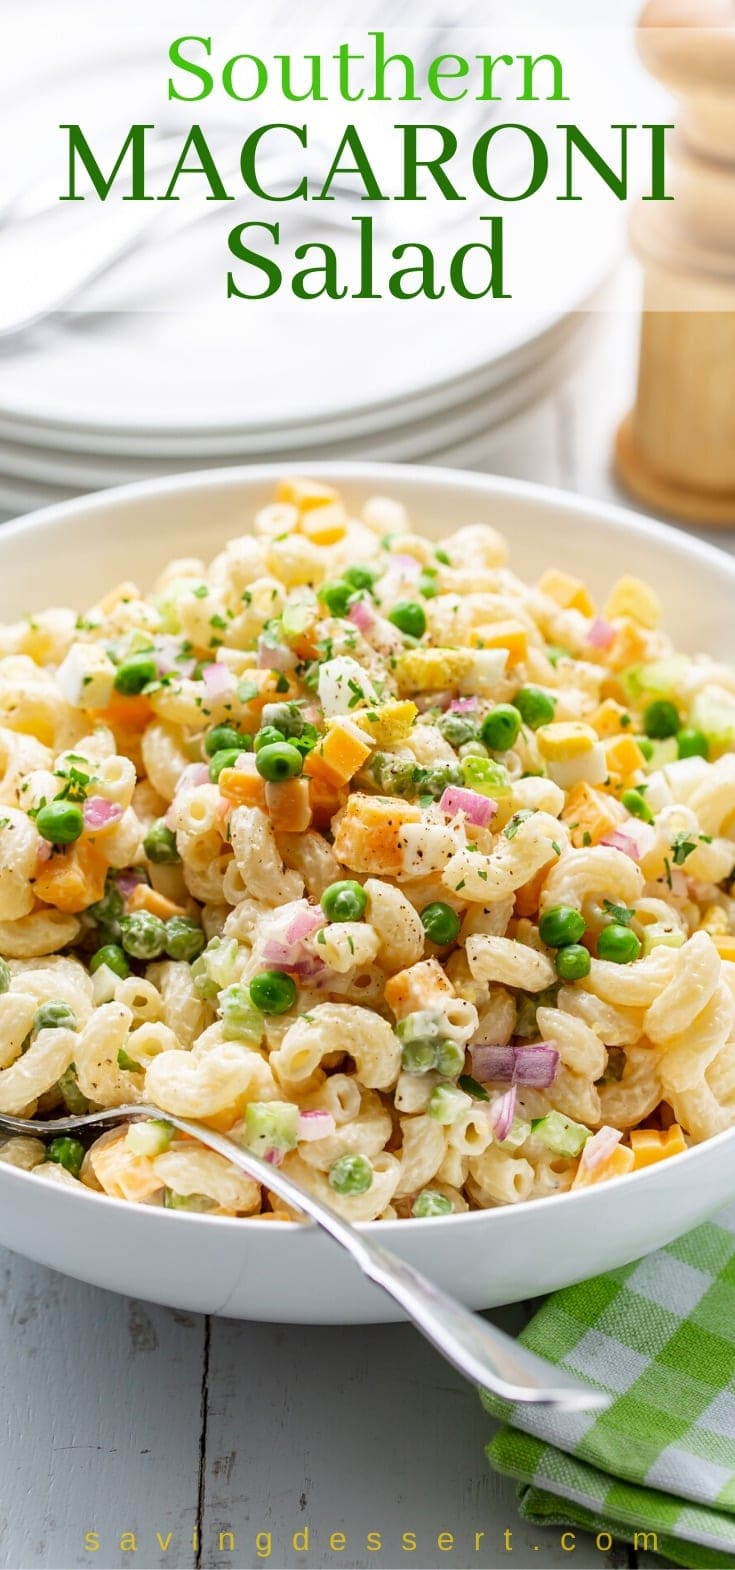 A bowl of macaroni salad with peas and cheese